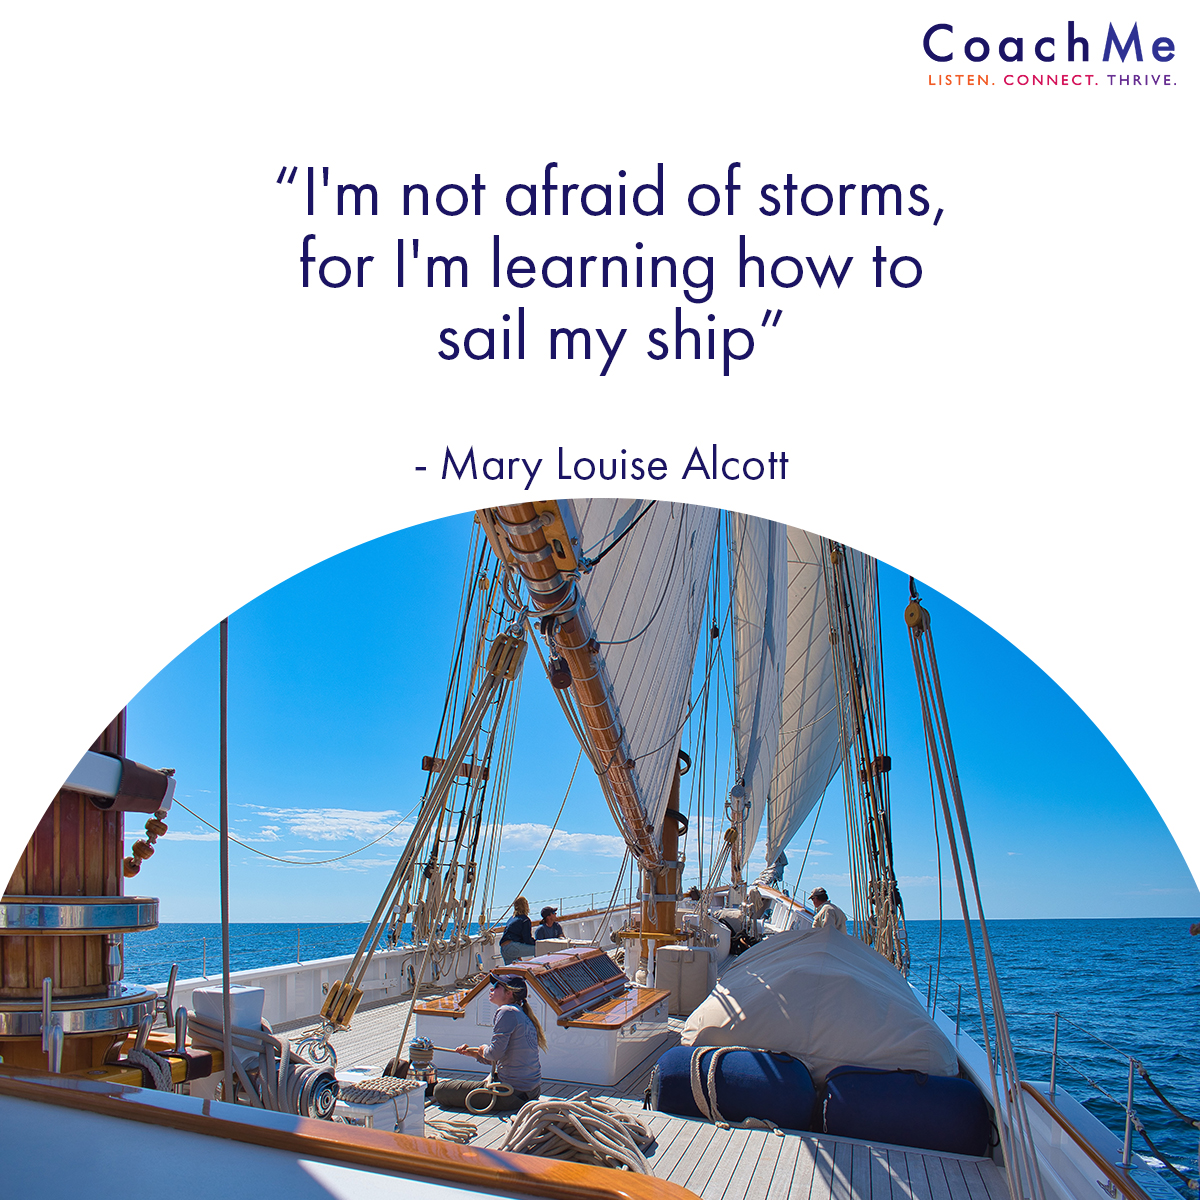 Coaching Images - Sail my Ship - Mary Louise Alcott - CoachMe Vancouver